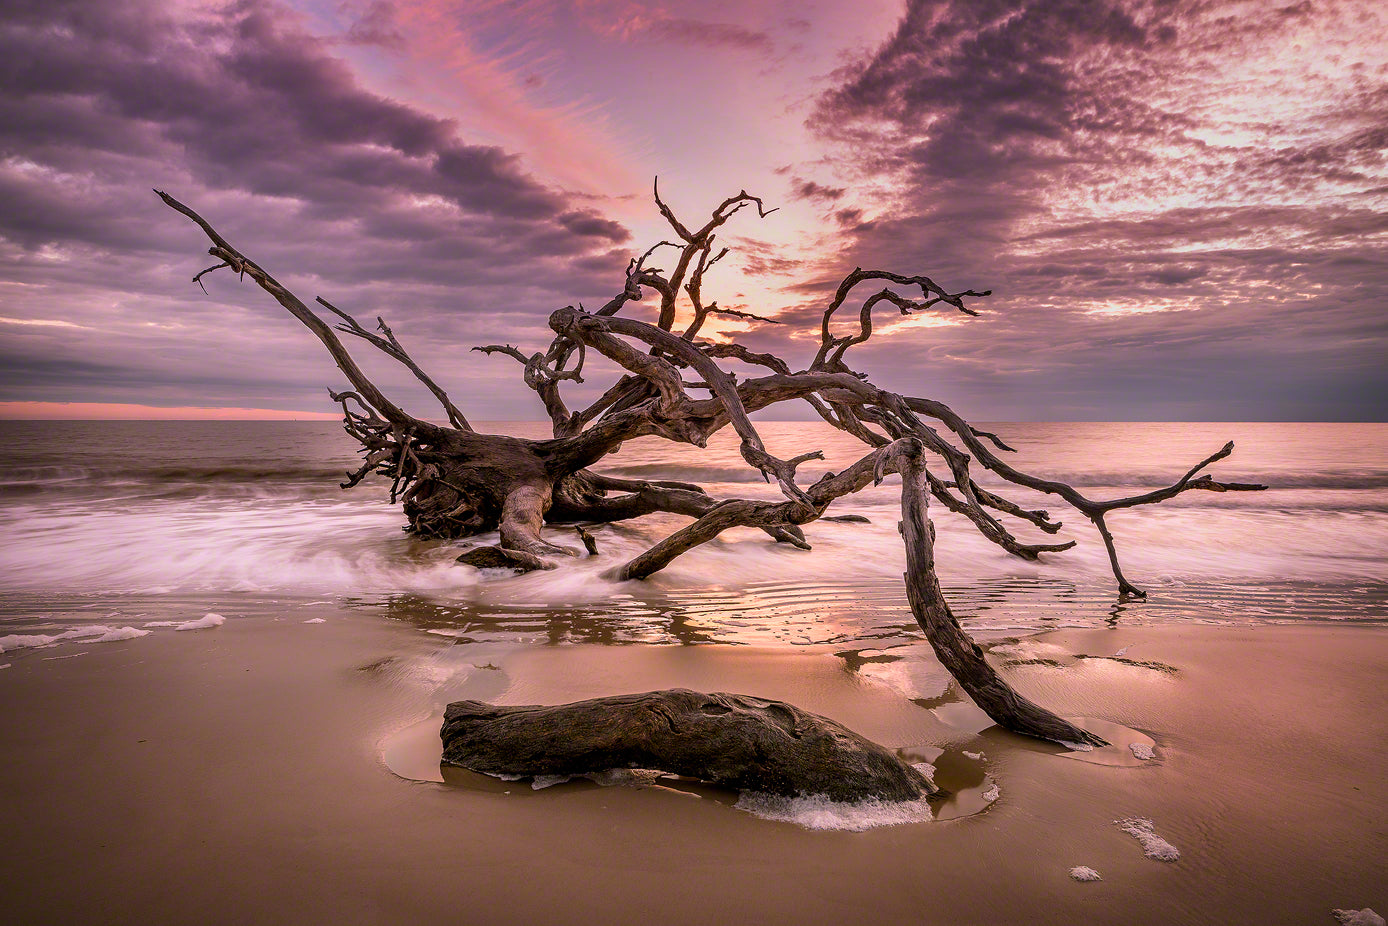 A photo of a large old oak tree driftwood on the beach in Jekyll Island, GA